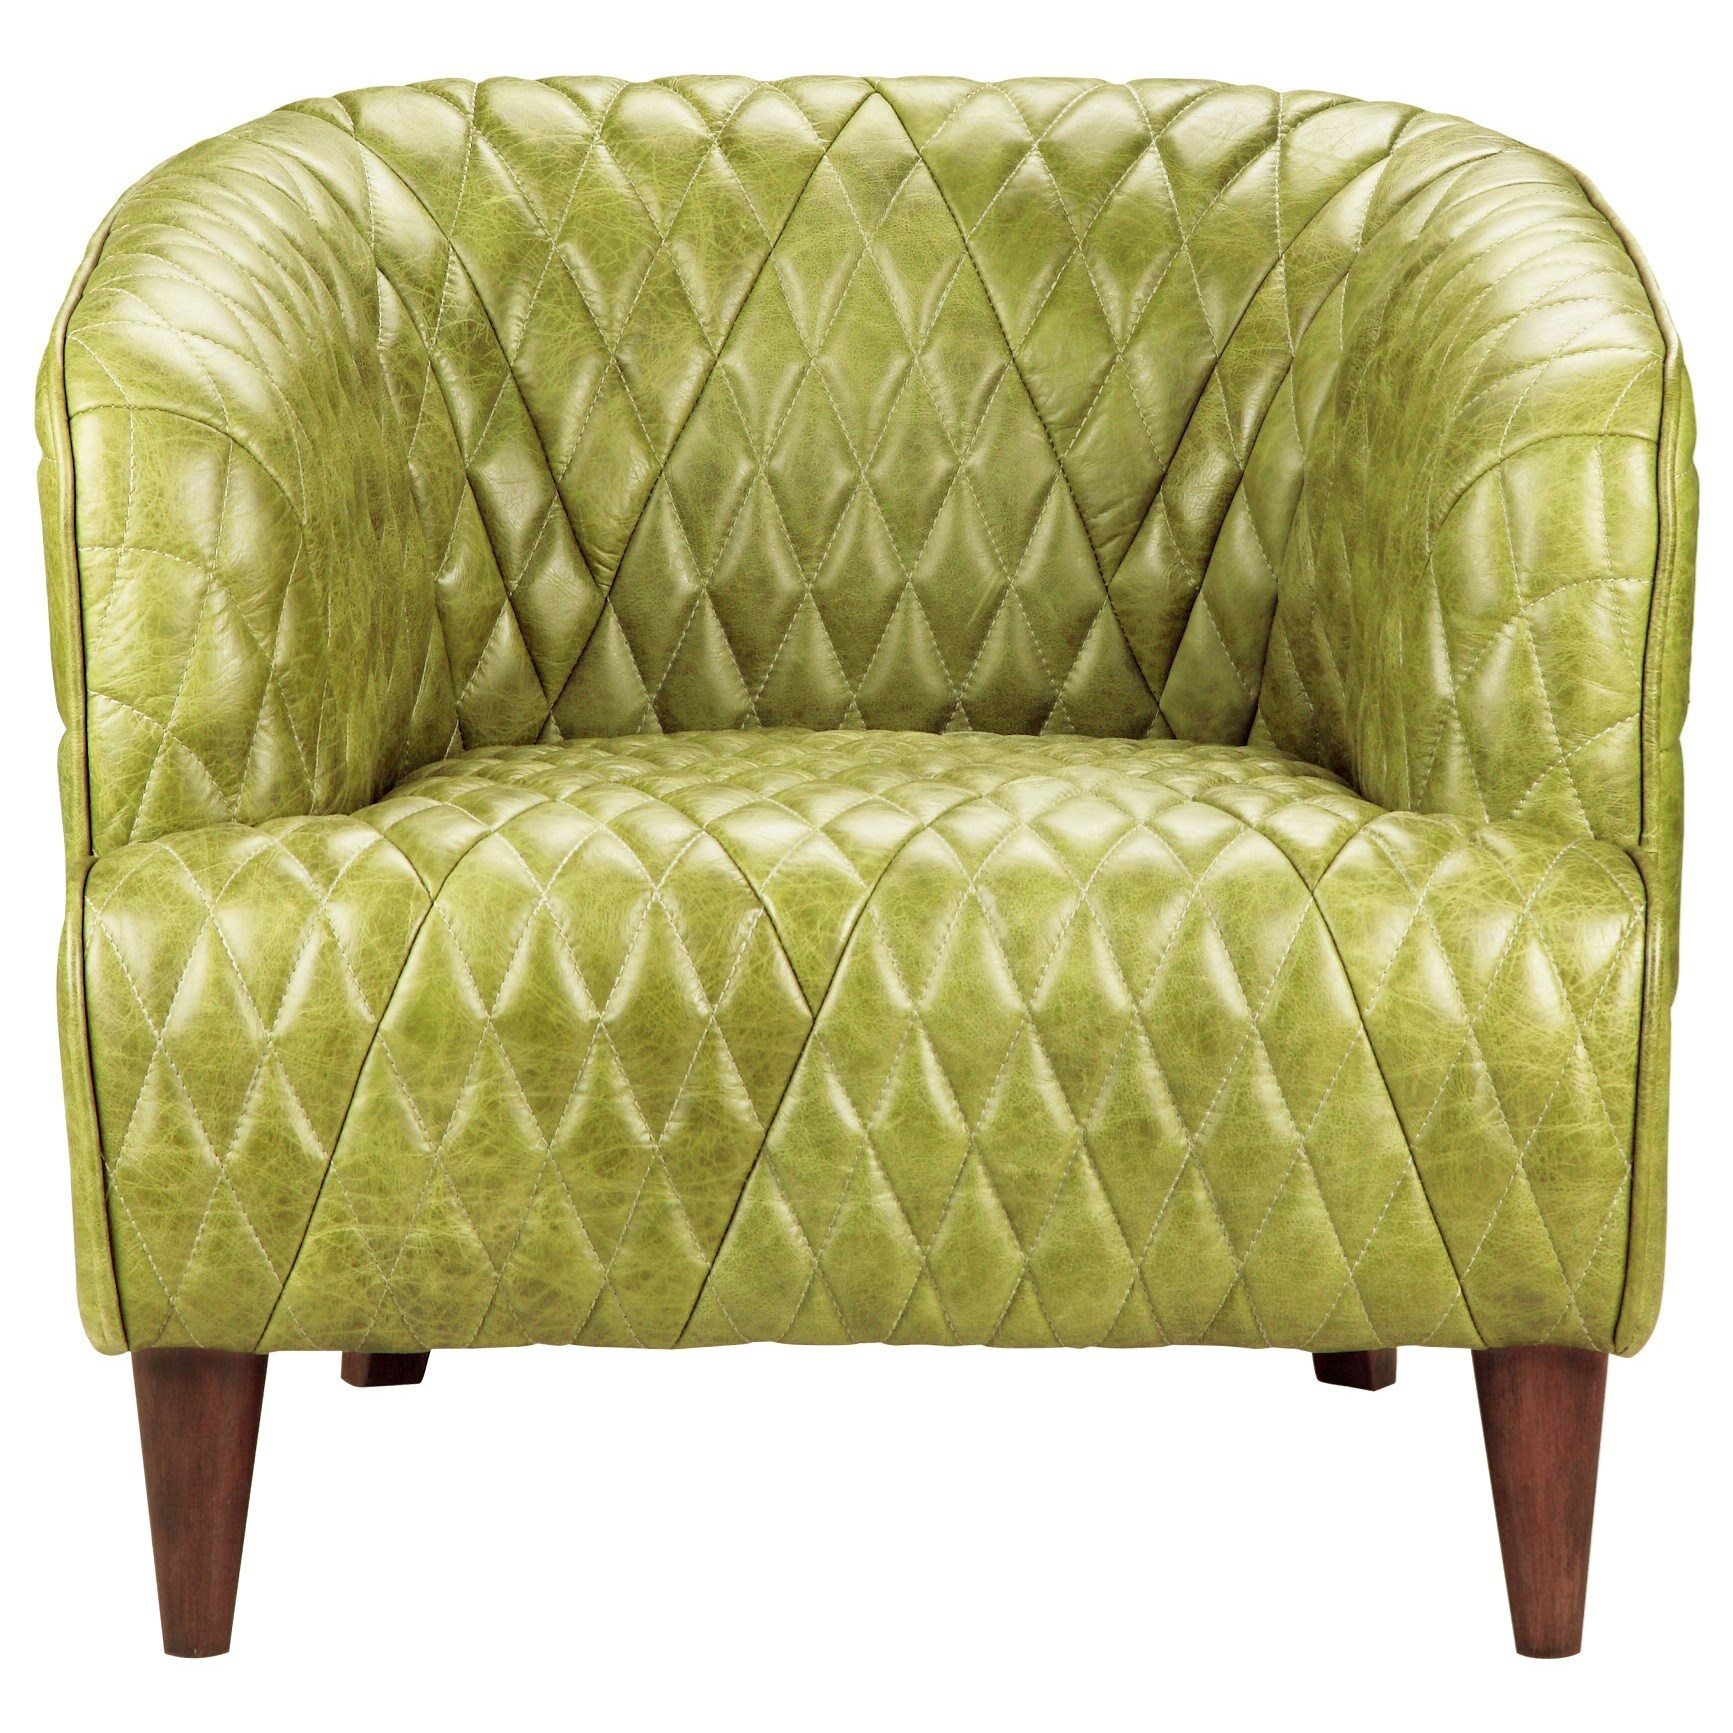 Magdelan Arm Chair by Moe's Home Collection at Stoney Creek Furniture